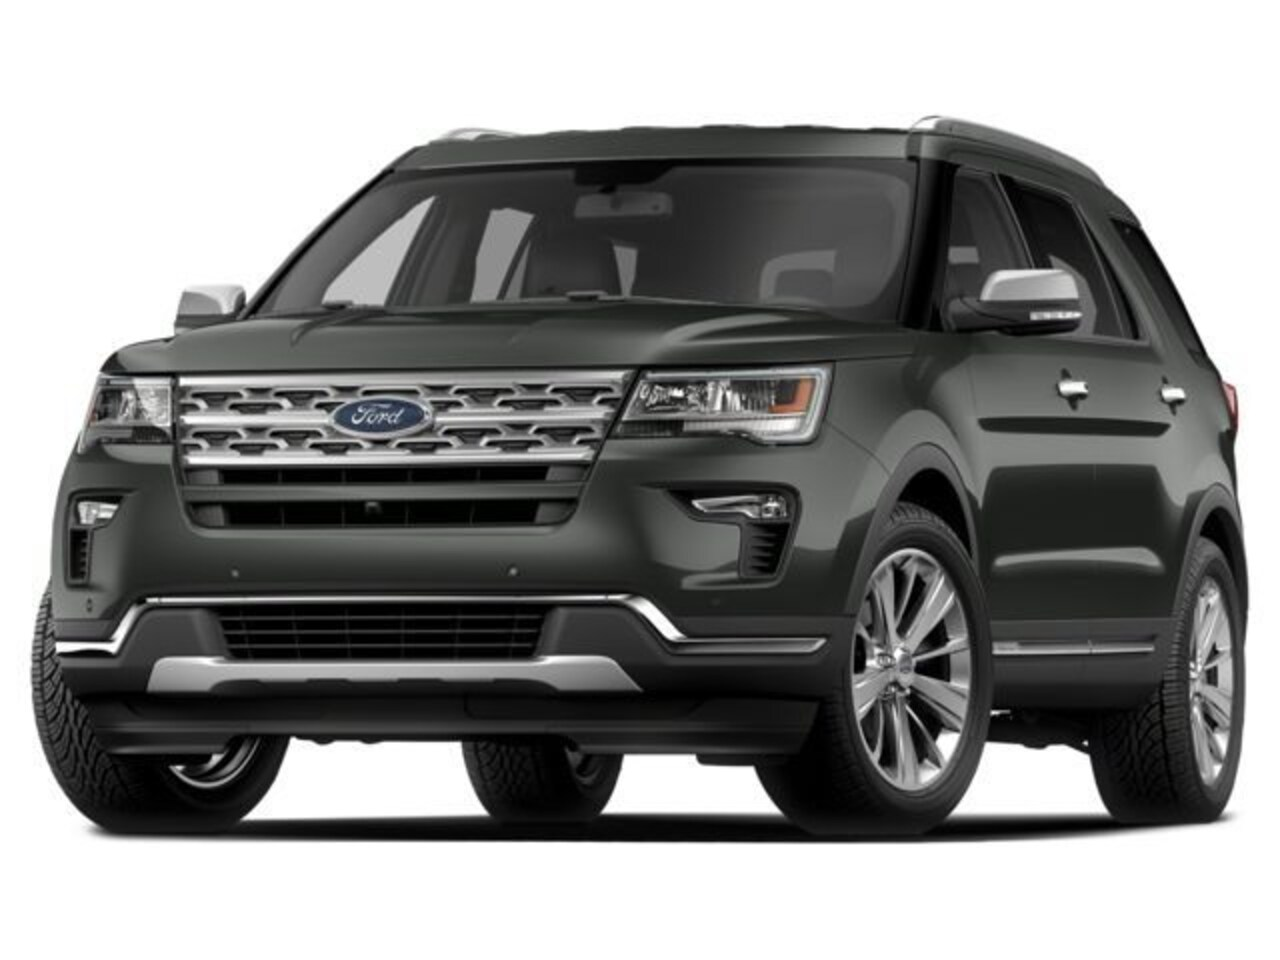 2018 Ford Explorer XLT 202A 4WD POWER LIFTGATE ROOF TECH APPEARANCE SUV